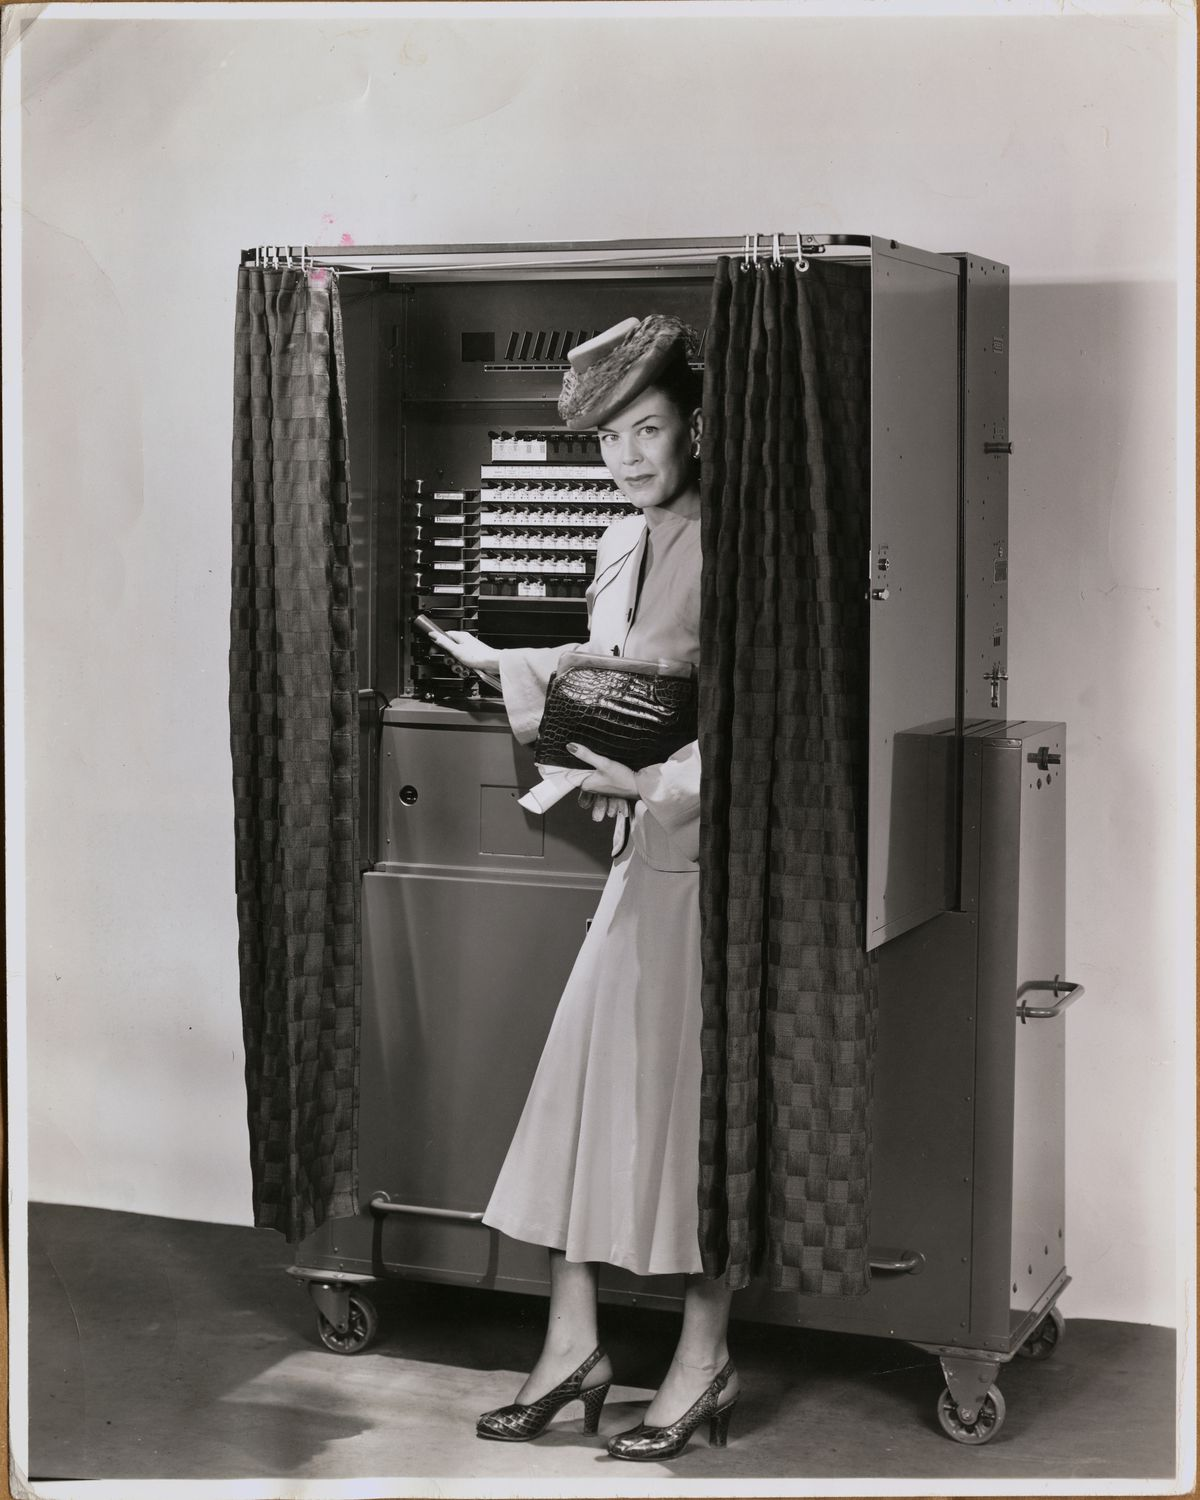 Female Model Posing with Early Voting Booth